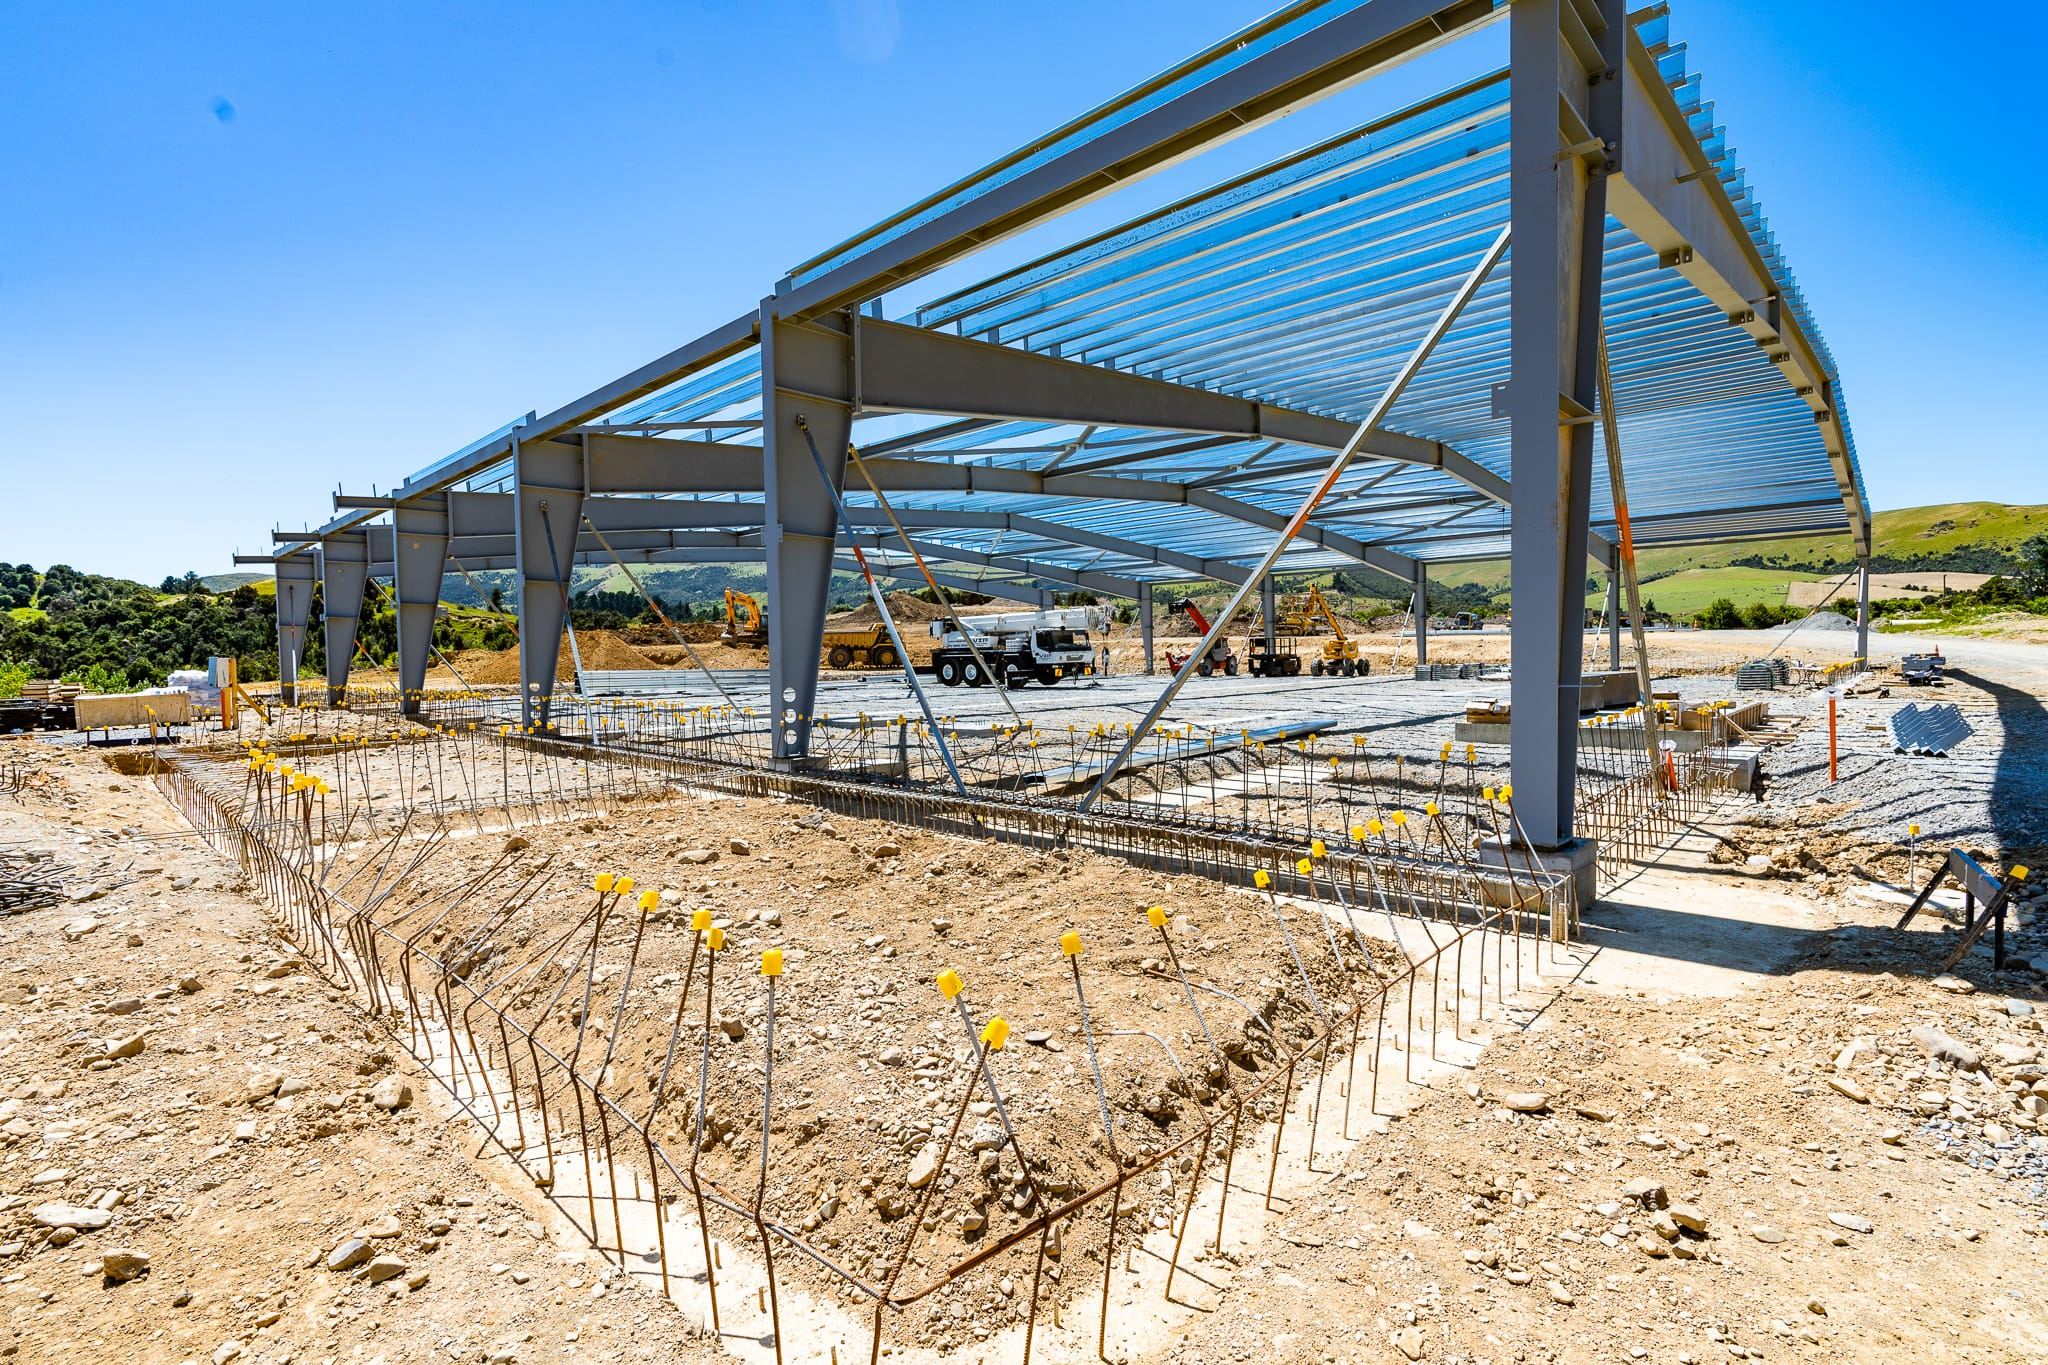 vip_steel_christchurch_north_canterbury_rodin_cars_superstructure_5